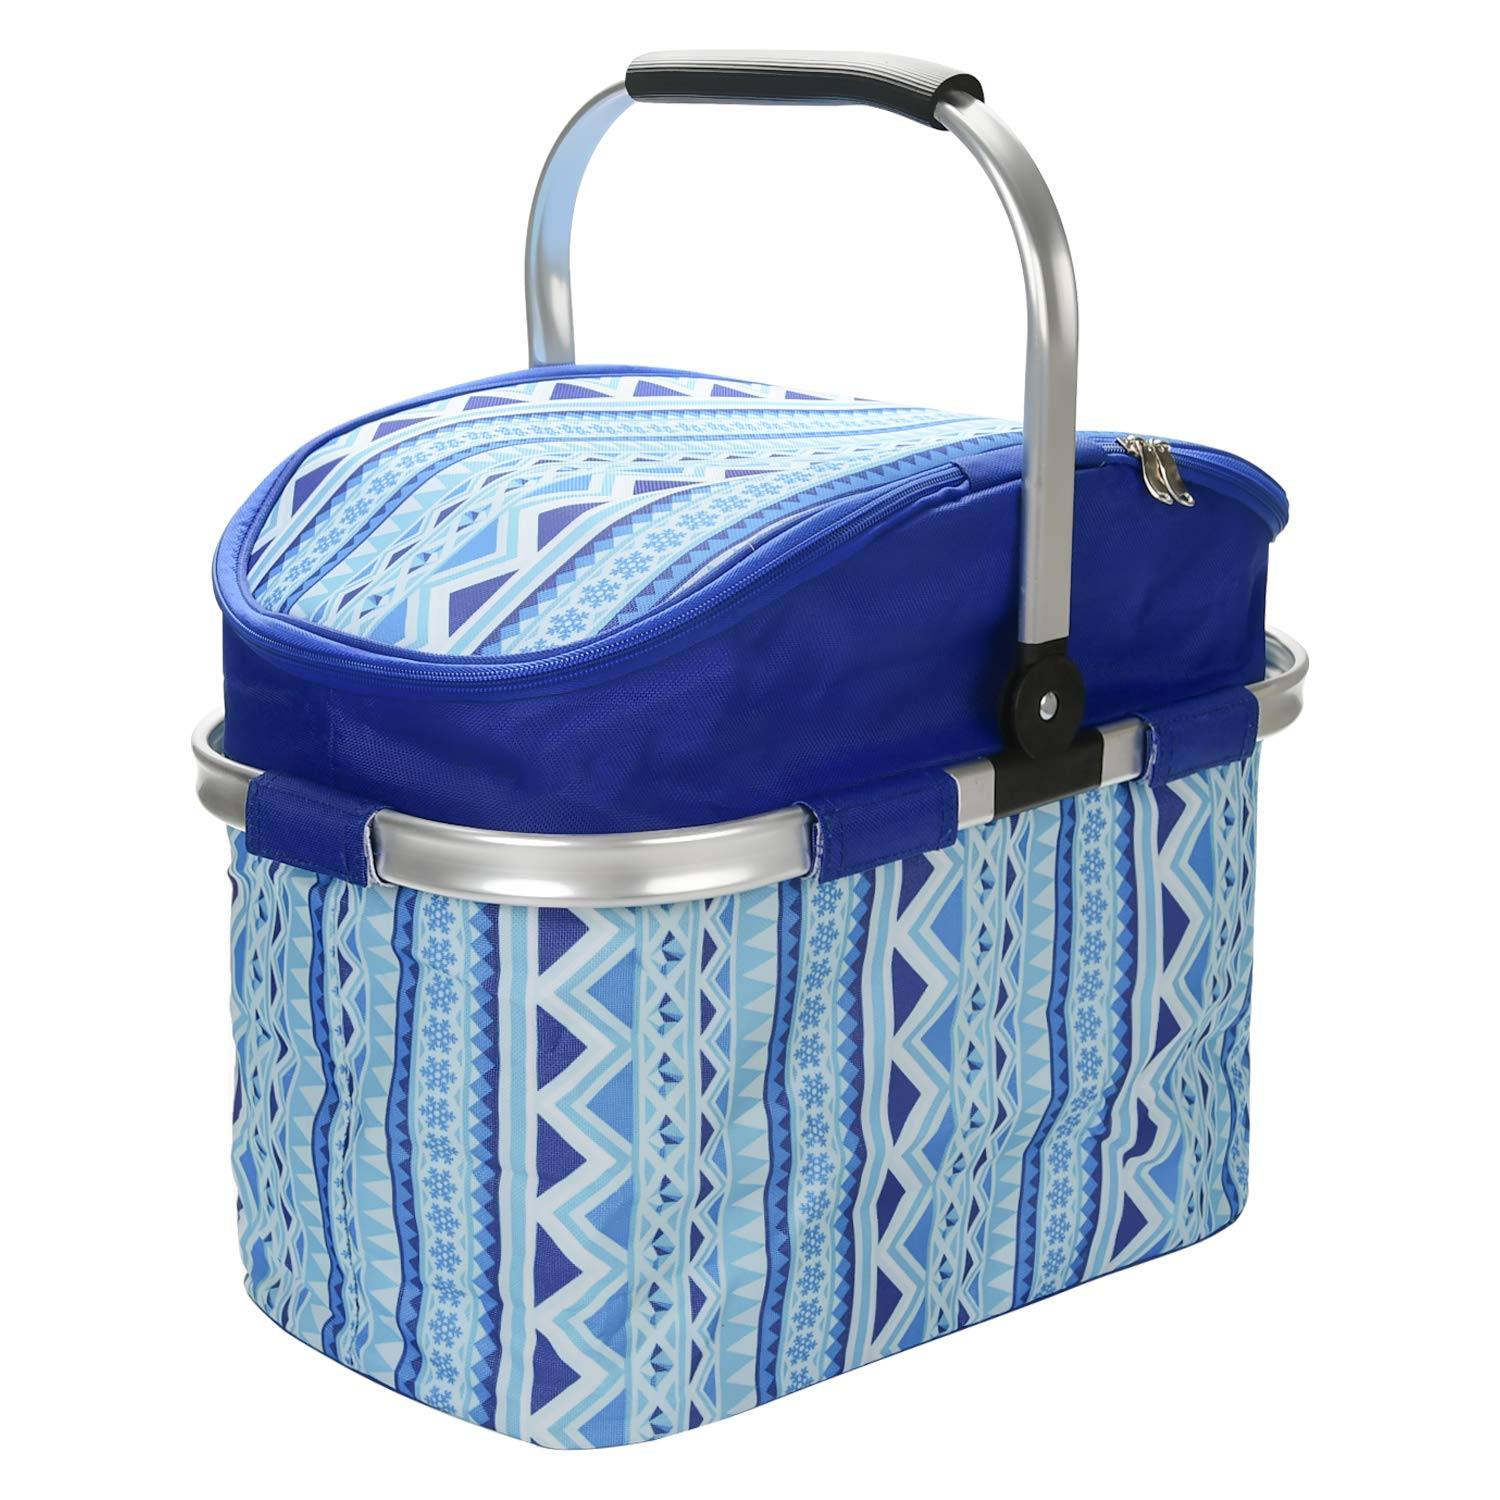 AILELAN Picnic Basket, 26L Large Size Insulated Picnic Basket - BBQ Meat Drinks Cooler Bag - Folding Collapsible Cooler Basket for Family Vacations Parties Outdoor Travel, Keep Food Cold Storage by AILELAN